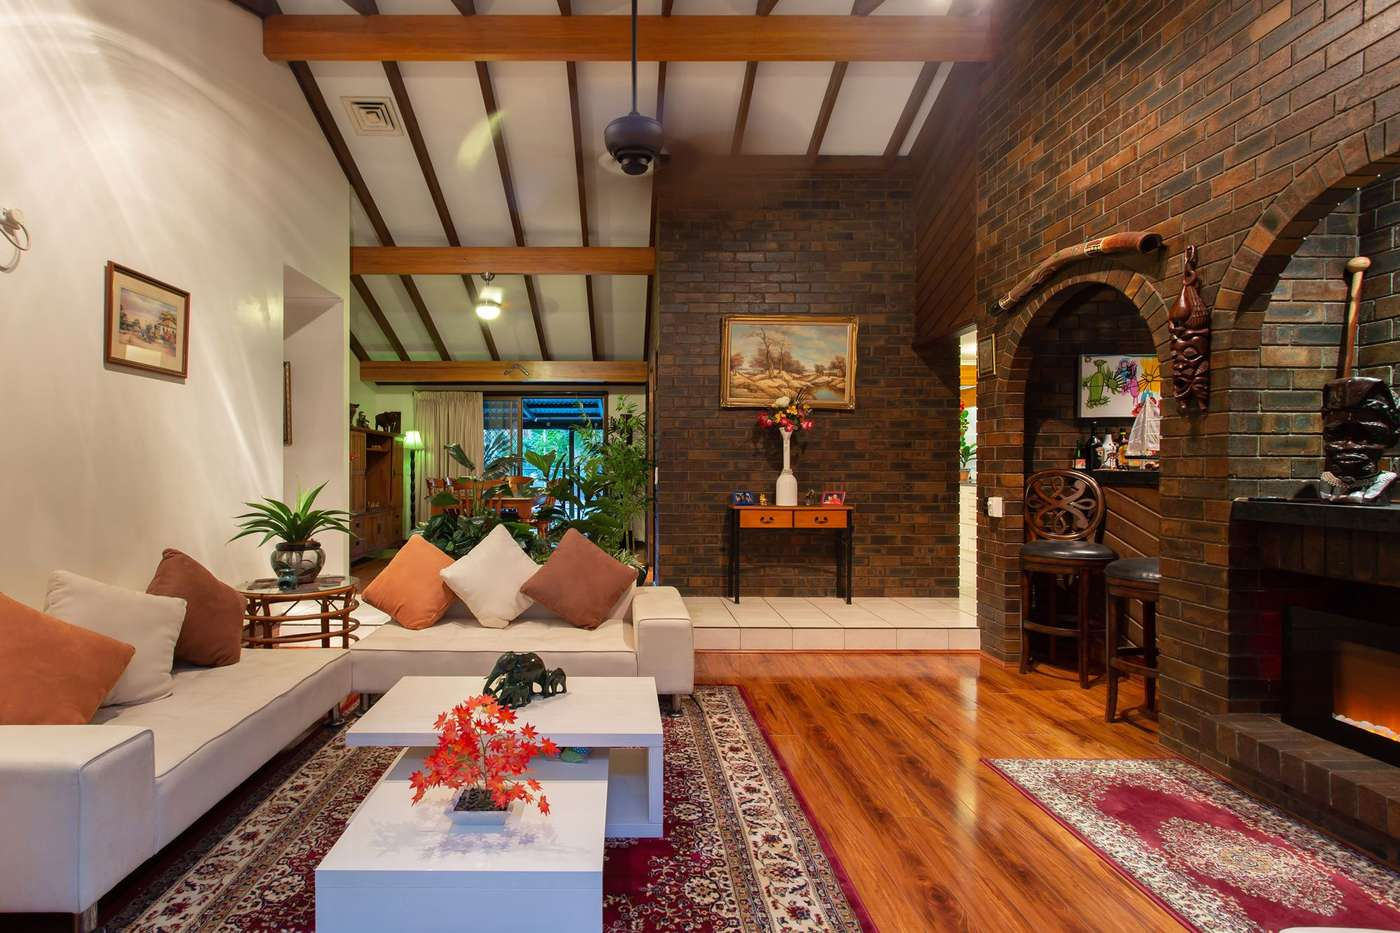 Main view of Homely house listing, 3 Conebush Crescent, Bellbowrie, QLD 4070